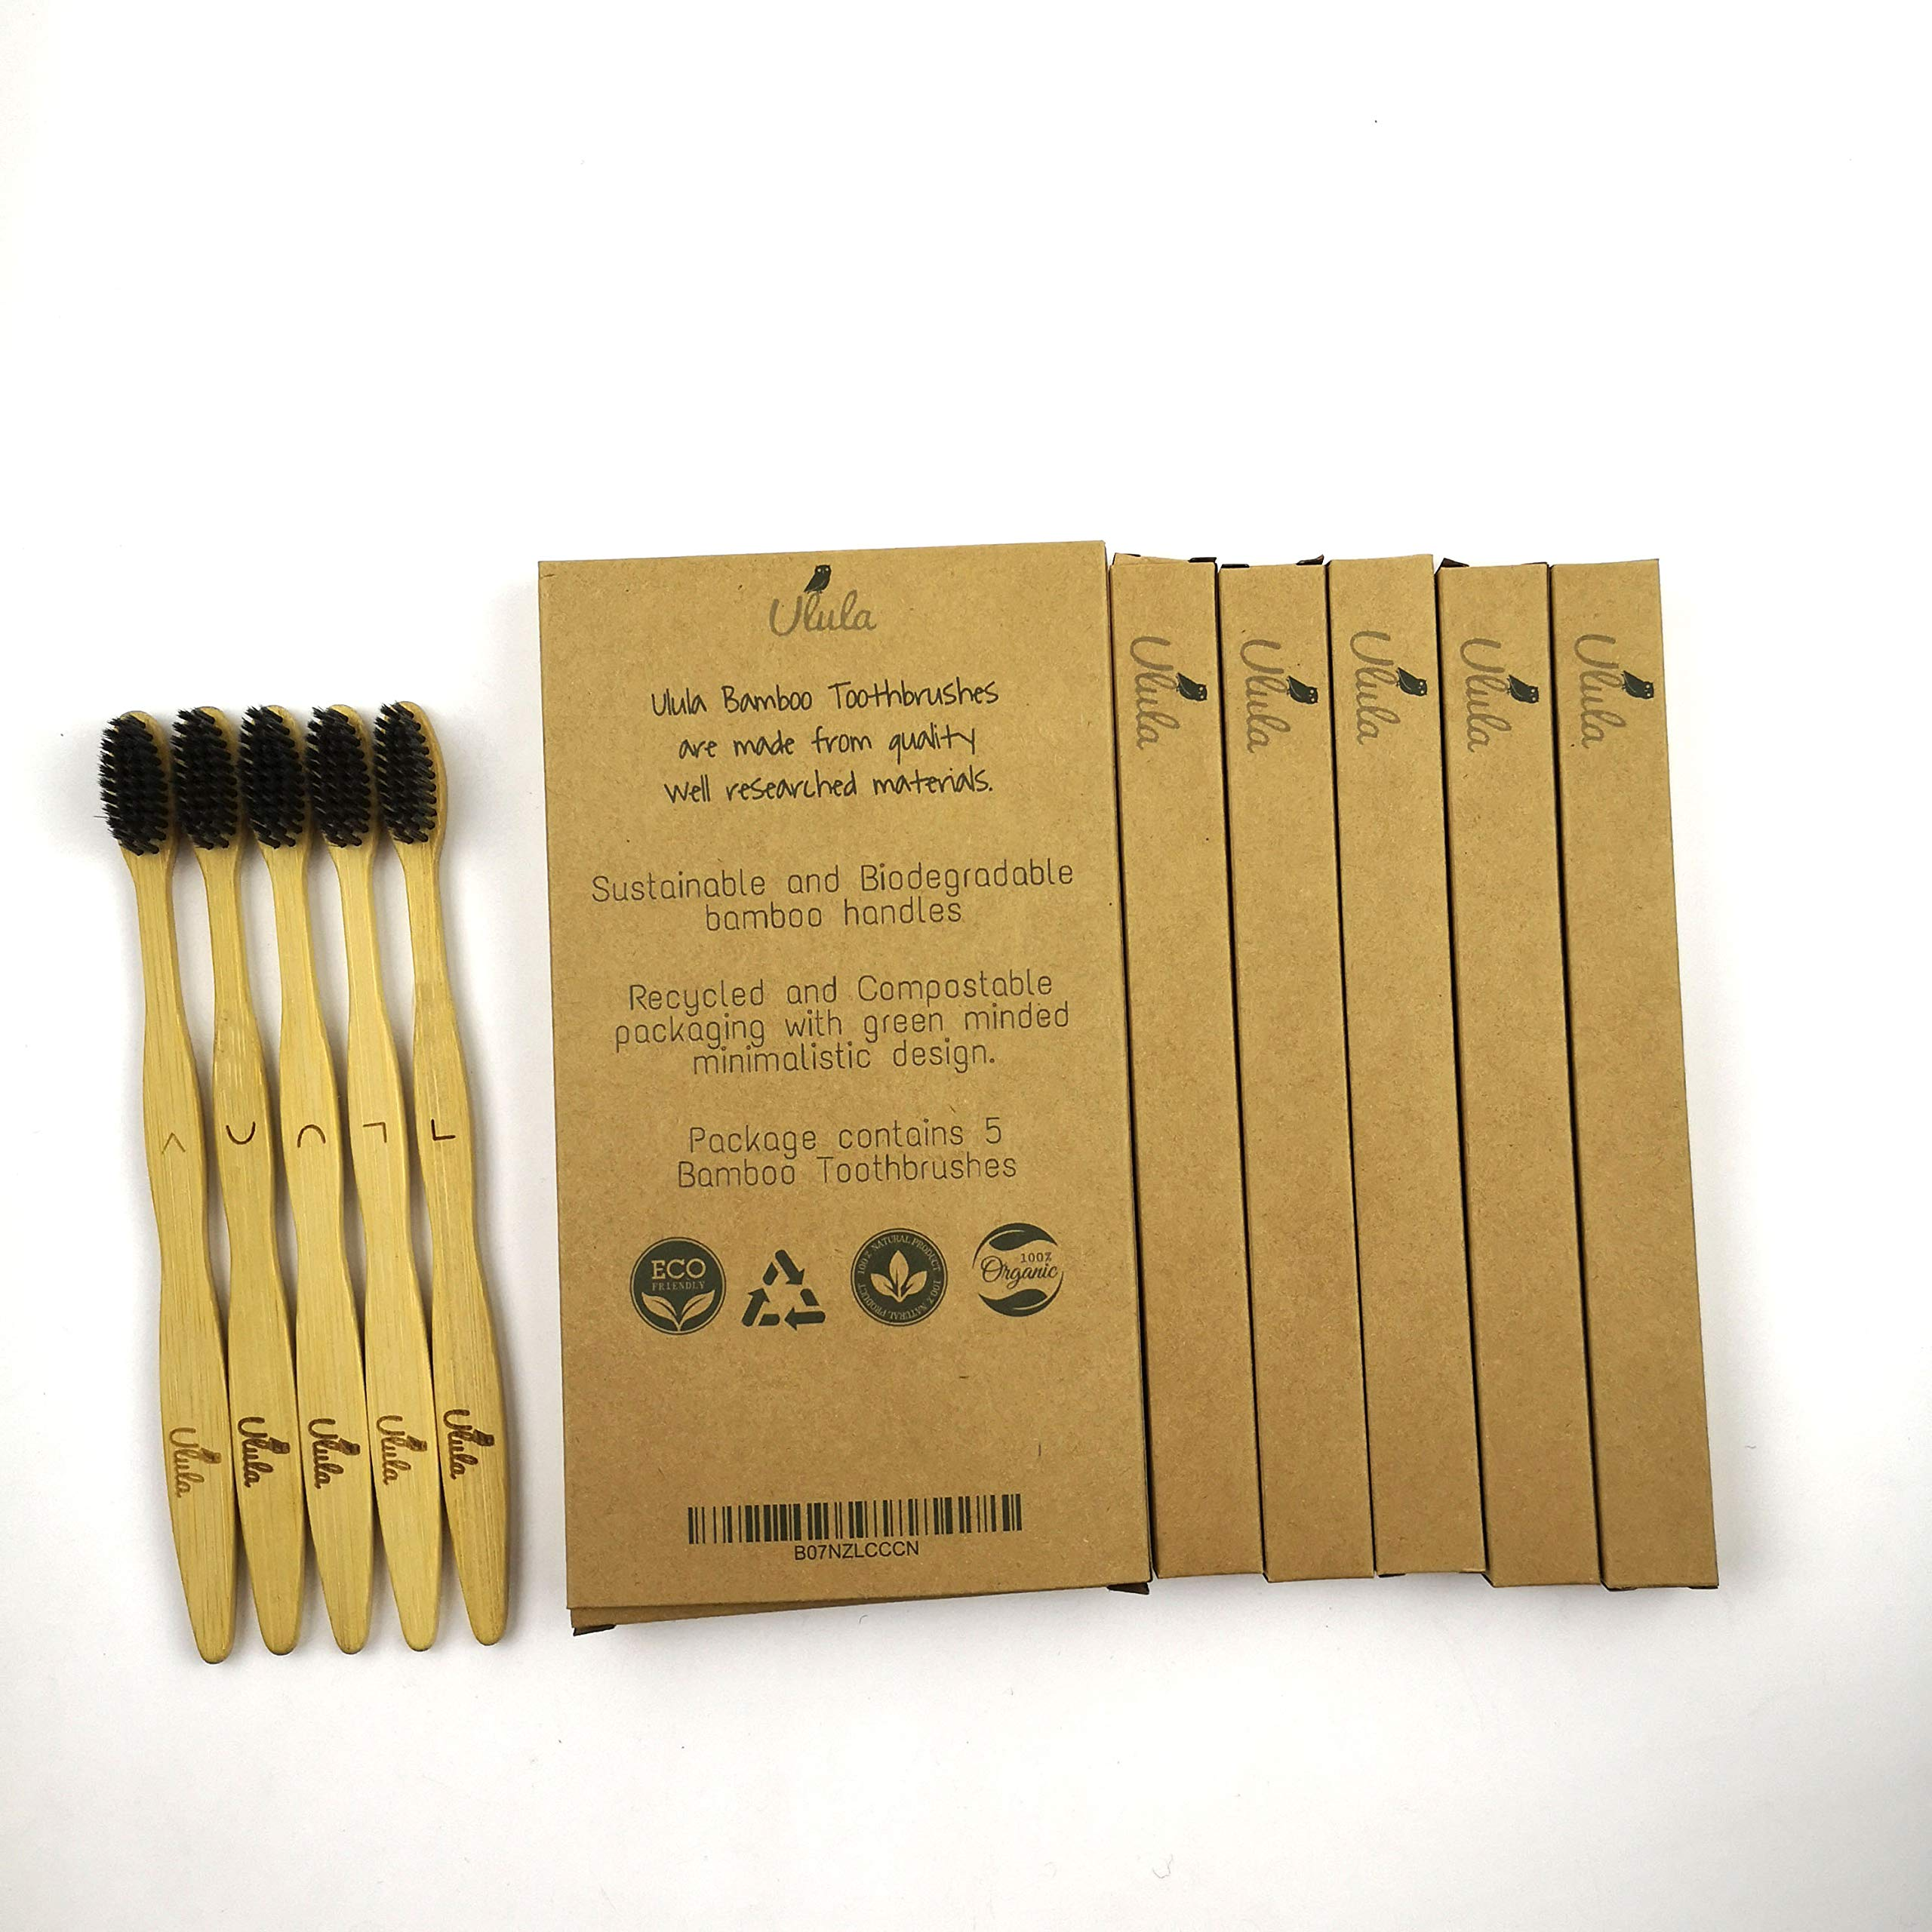 Ulula- our Best Charcoal Biodegradable Bamboo Toothbrush, Organic Eco-Friendly Bamboo with Ergonomic Handles & 100% BPA free|5 Pack (Charcoal)